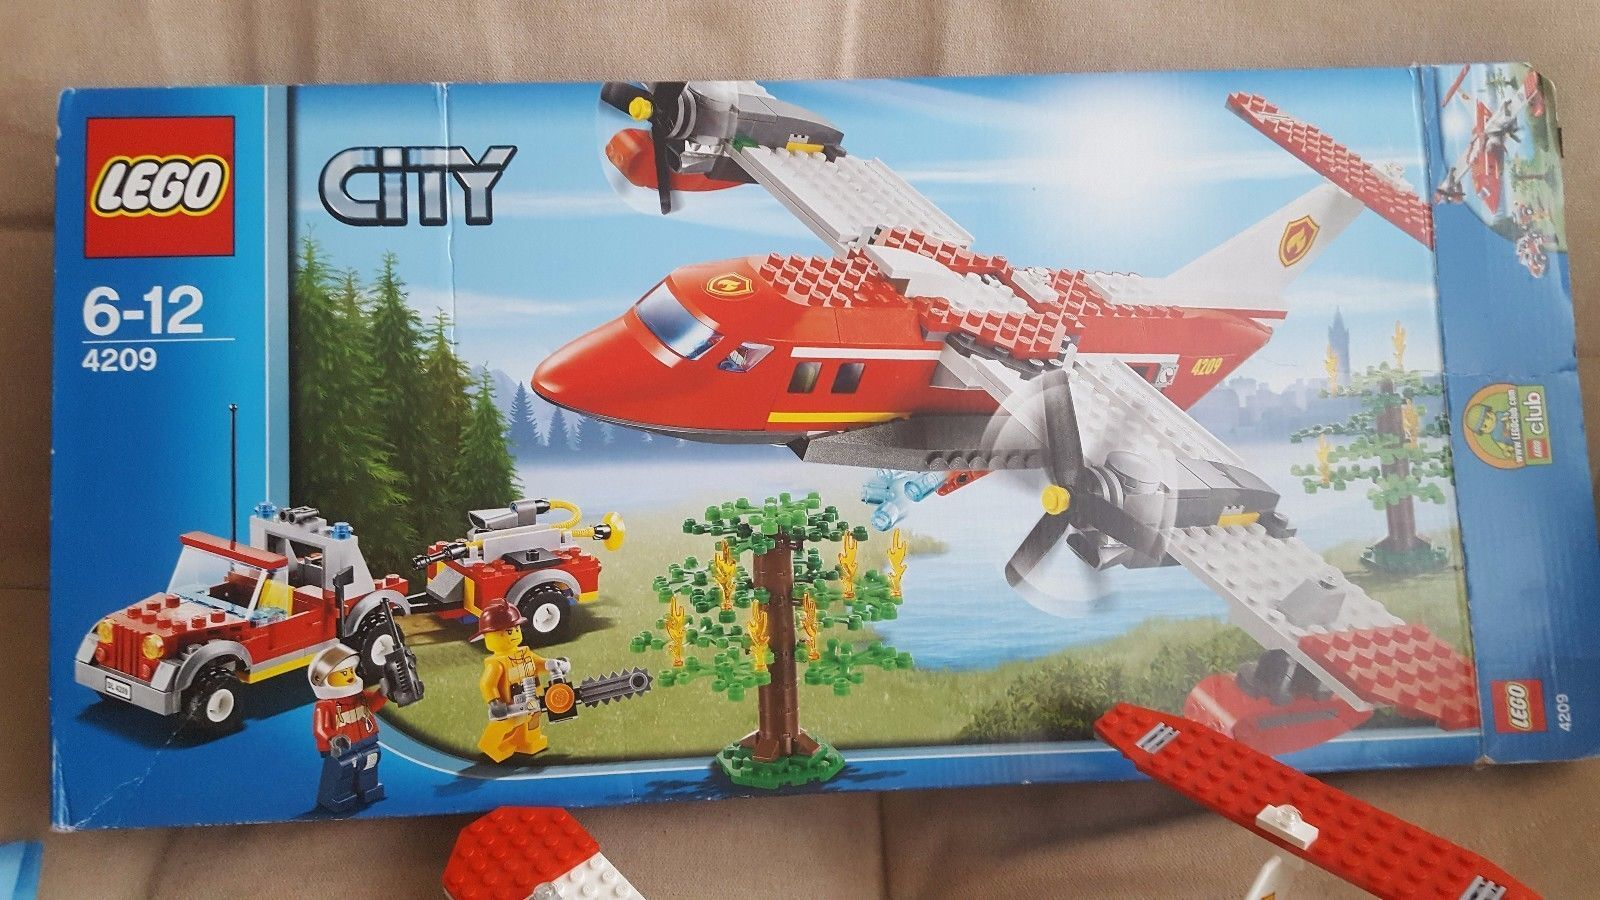 LEGO City Fire Plane 4209 Complete with Instructions and Box